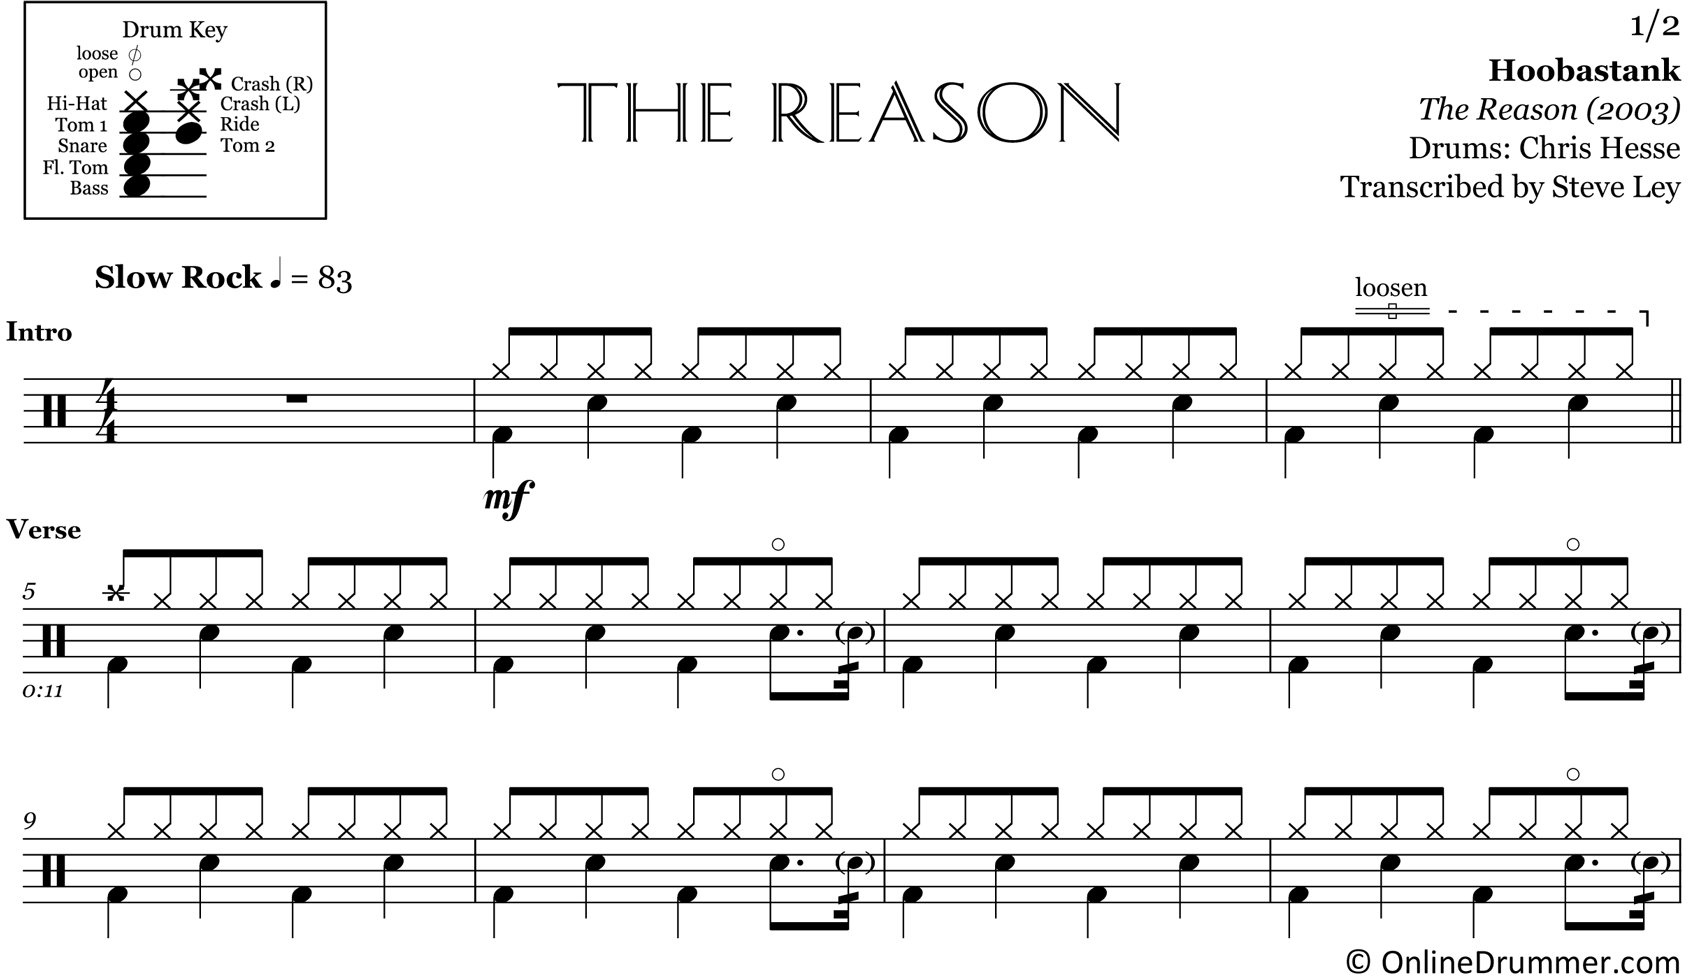 The Reason - Hoobastank - Drum Sheet Music